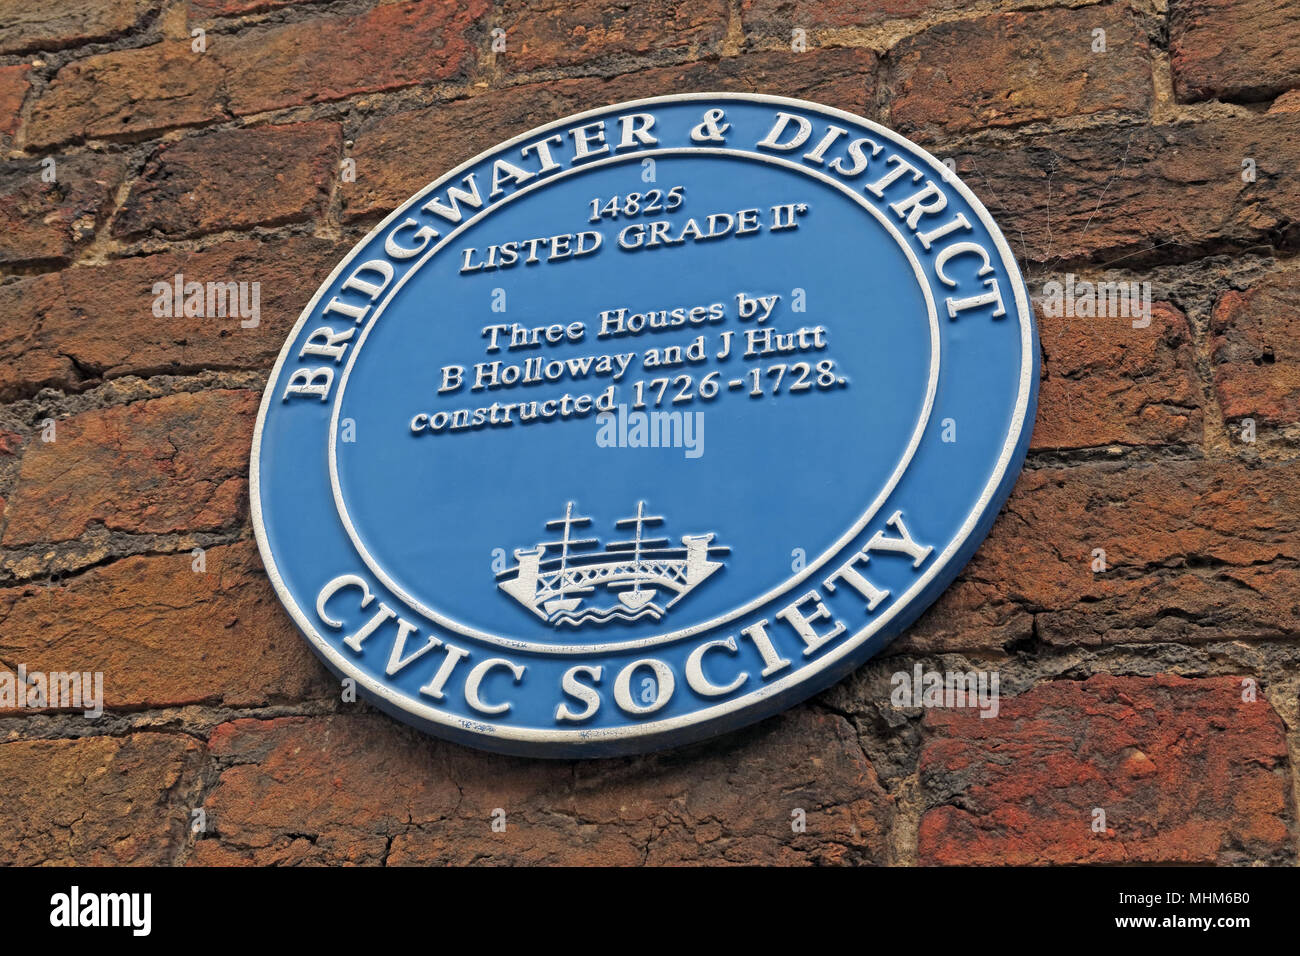 Bridgwater & District Civic Society Blue Plaque Three Houses By Holloway and Hutt, North Somerset, england, UK - Stock Image